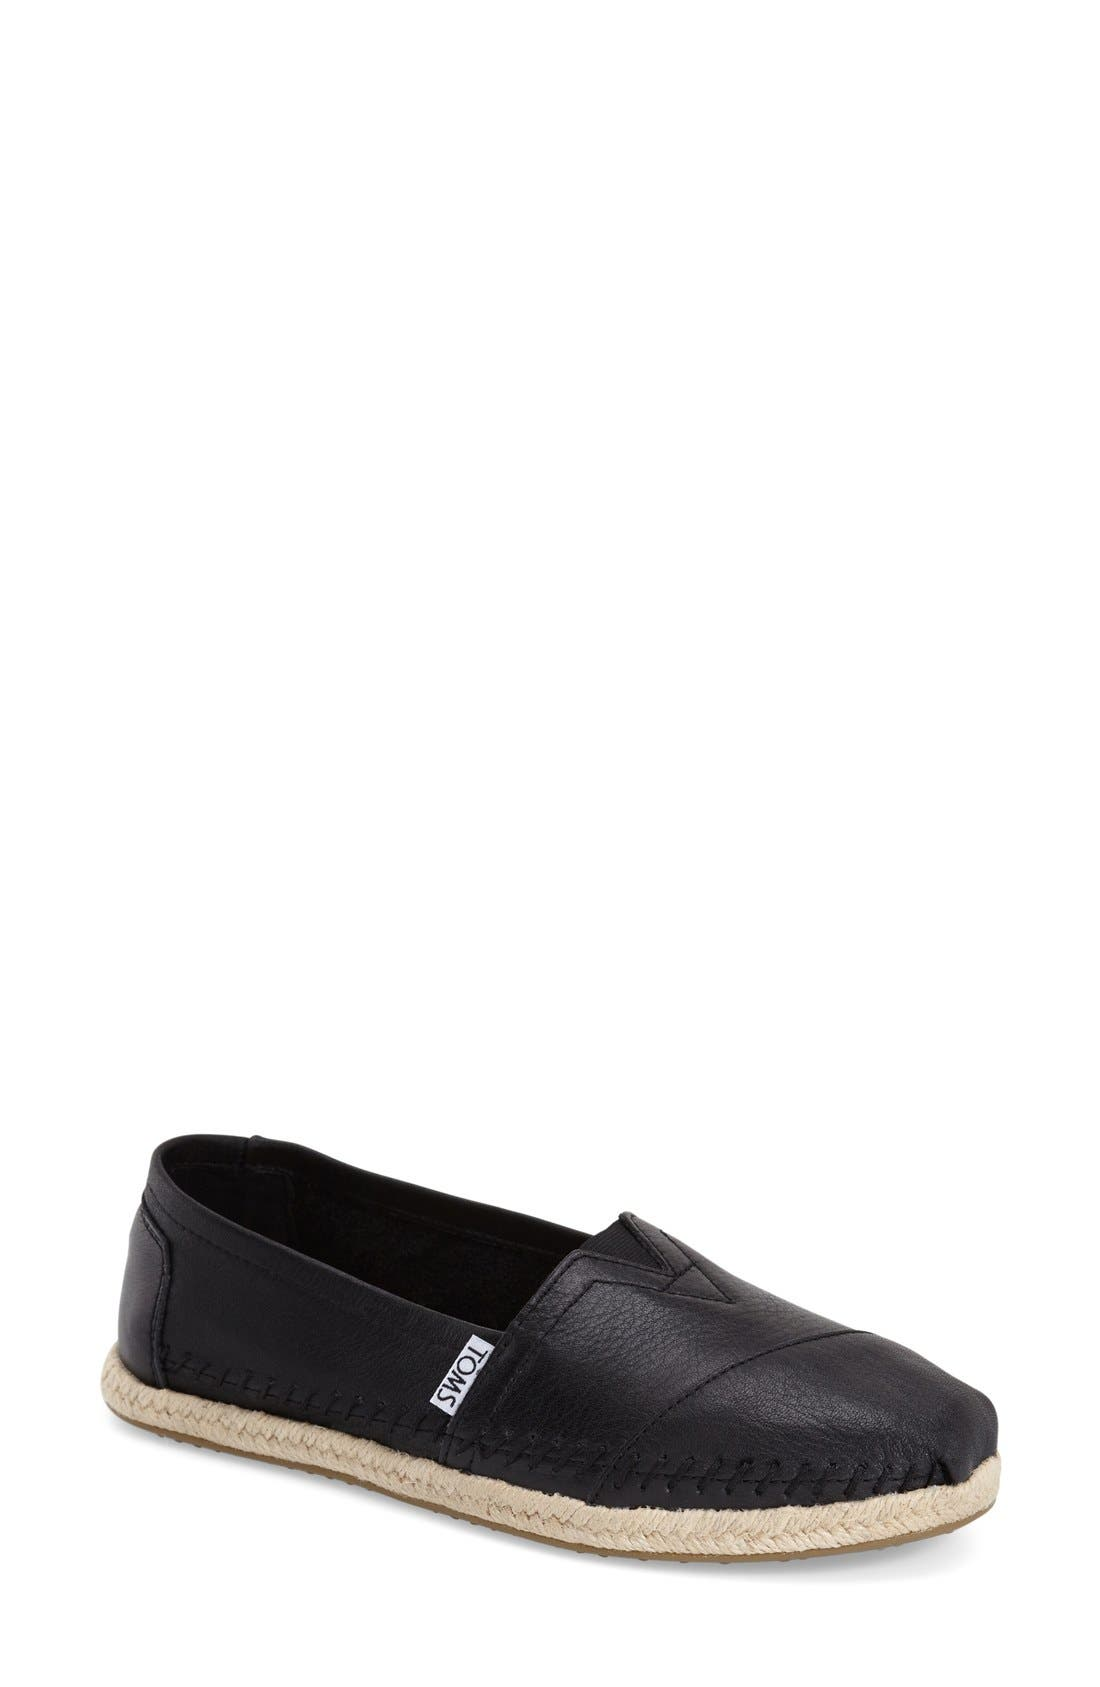 Alternate Image 1 Selected - TOMS 'Classic - Leather' Espadrille Slip-On (Women)